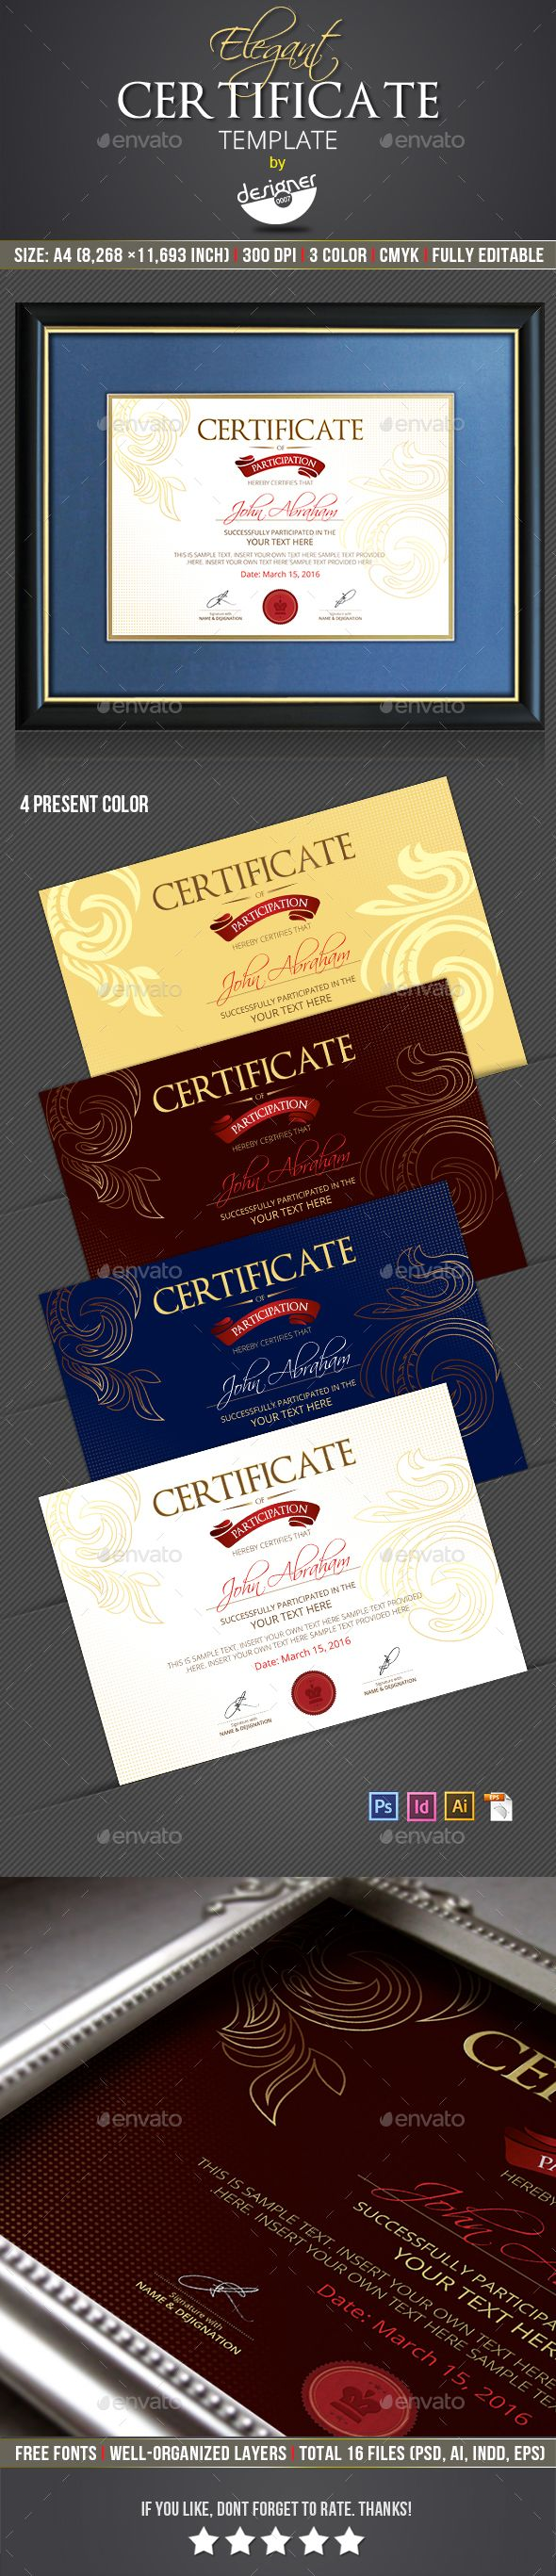 best ideas about certificate templates gift certificate template